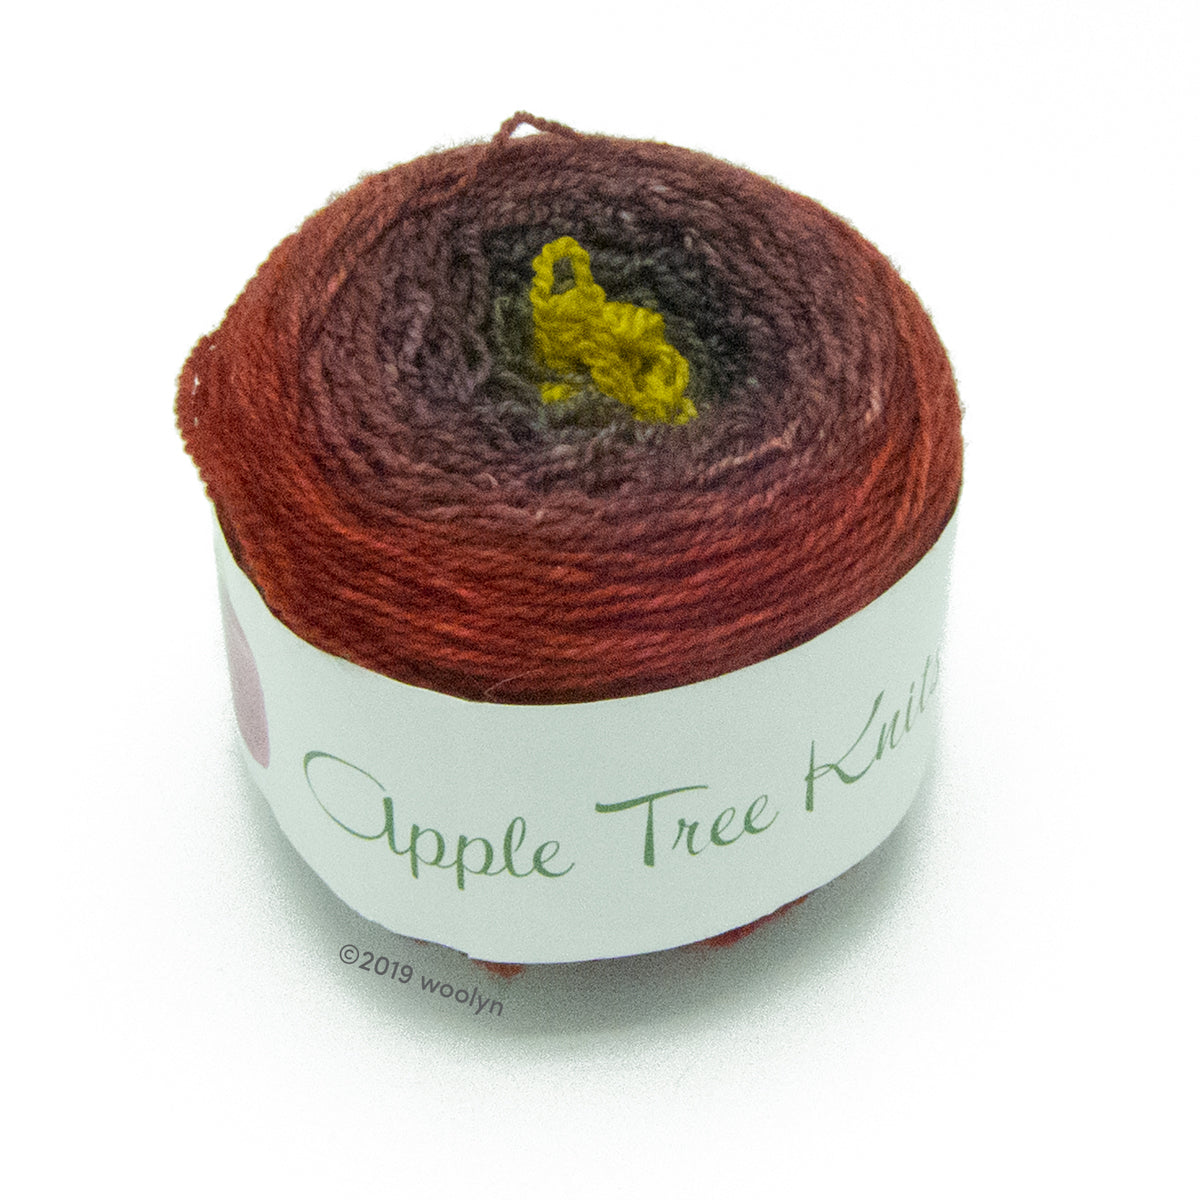 A wound cake of hand dyed fingering weight yarn from Apple Tree Knits..  Yarn is a gradient from reddish brown to dark brown to bright acid green.